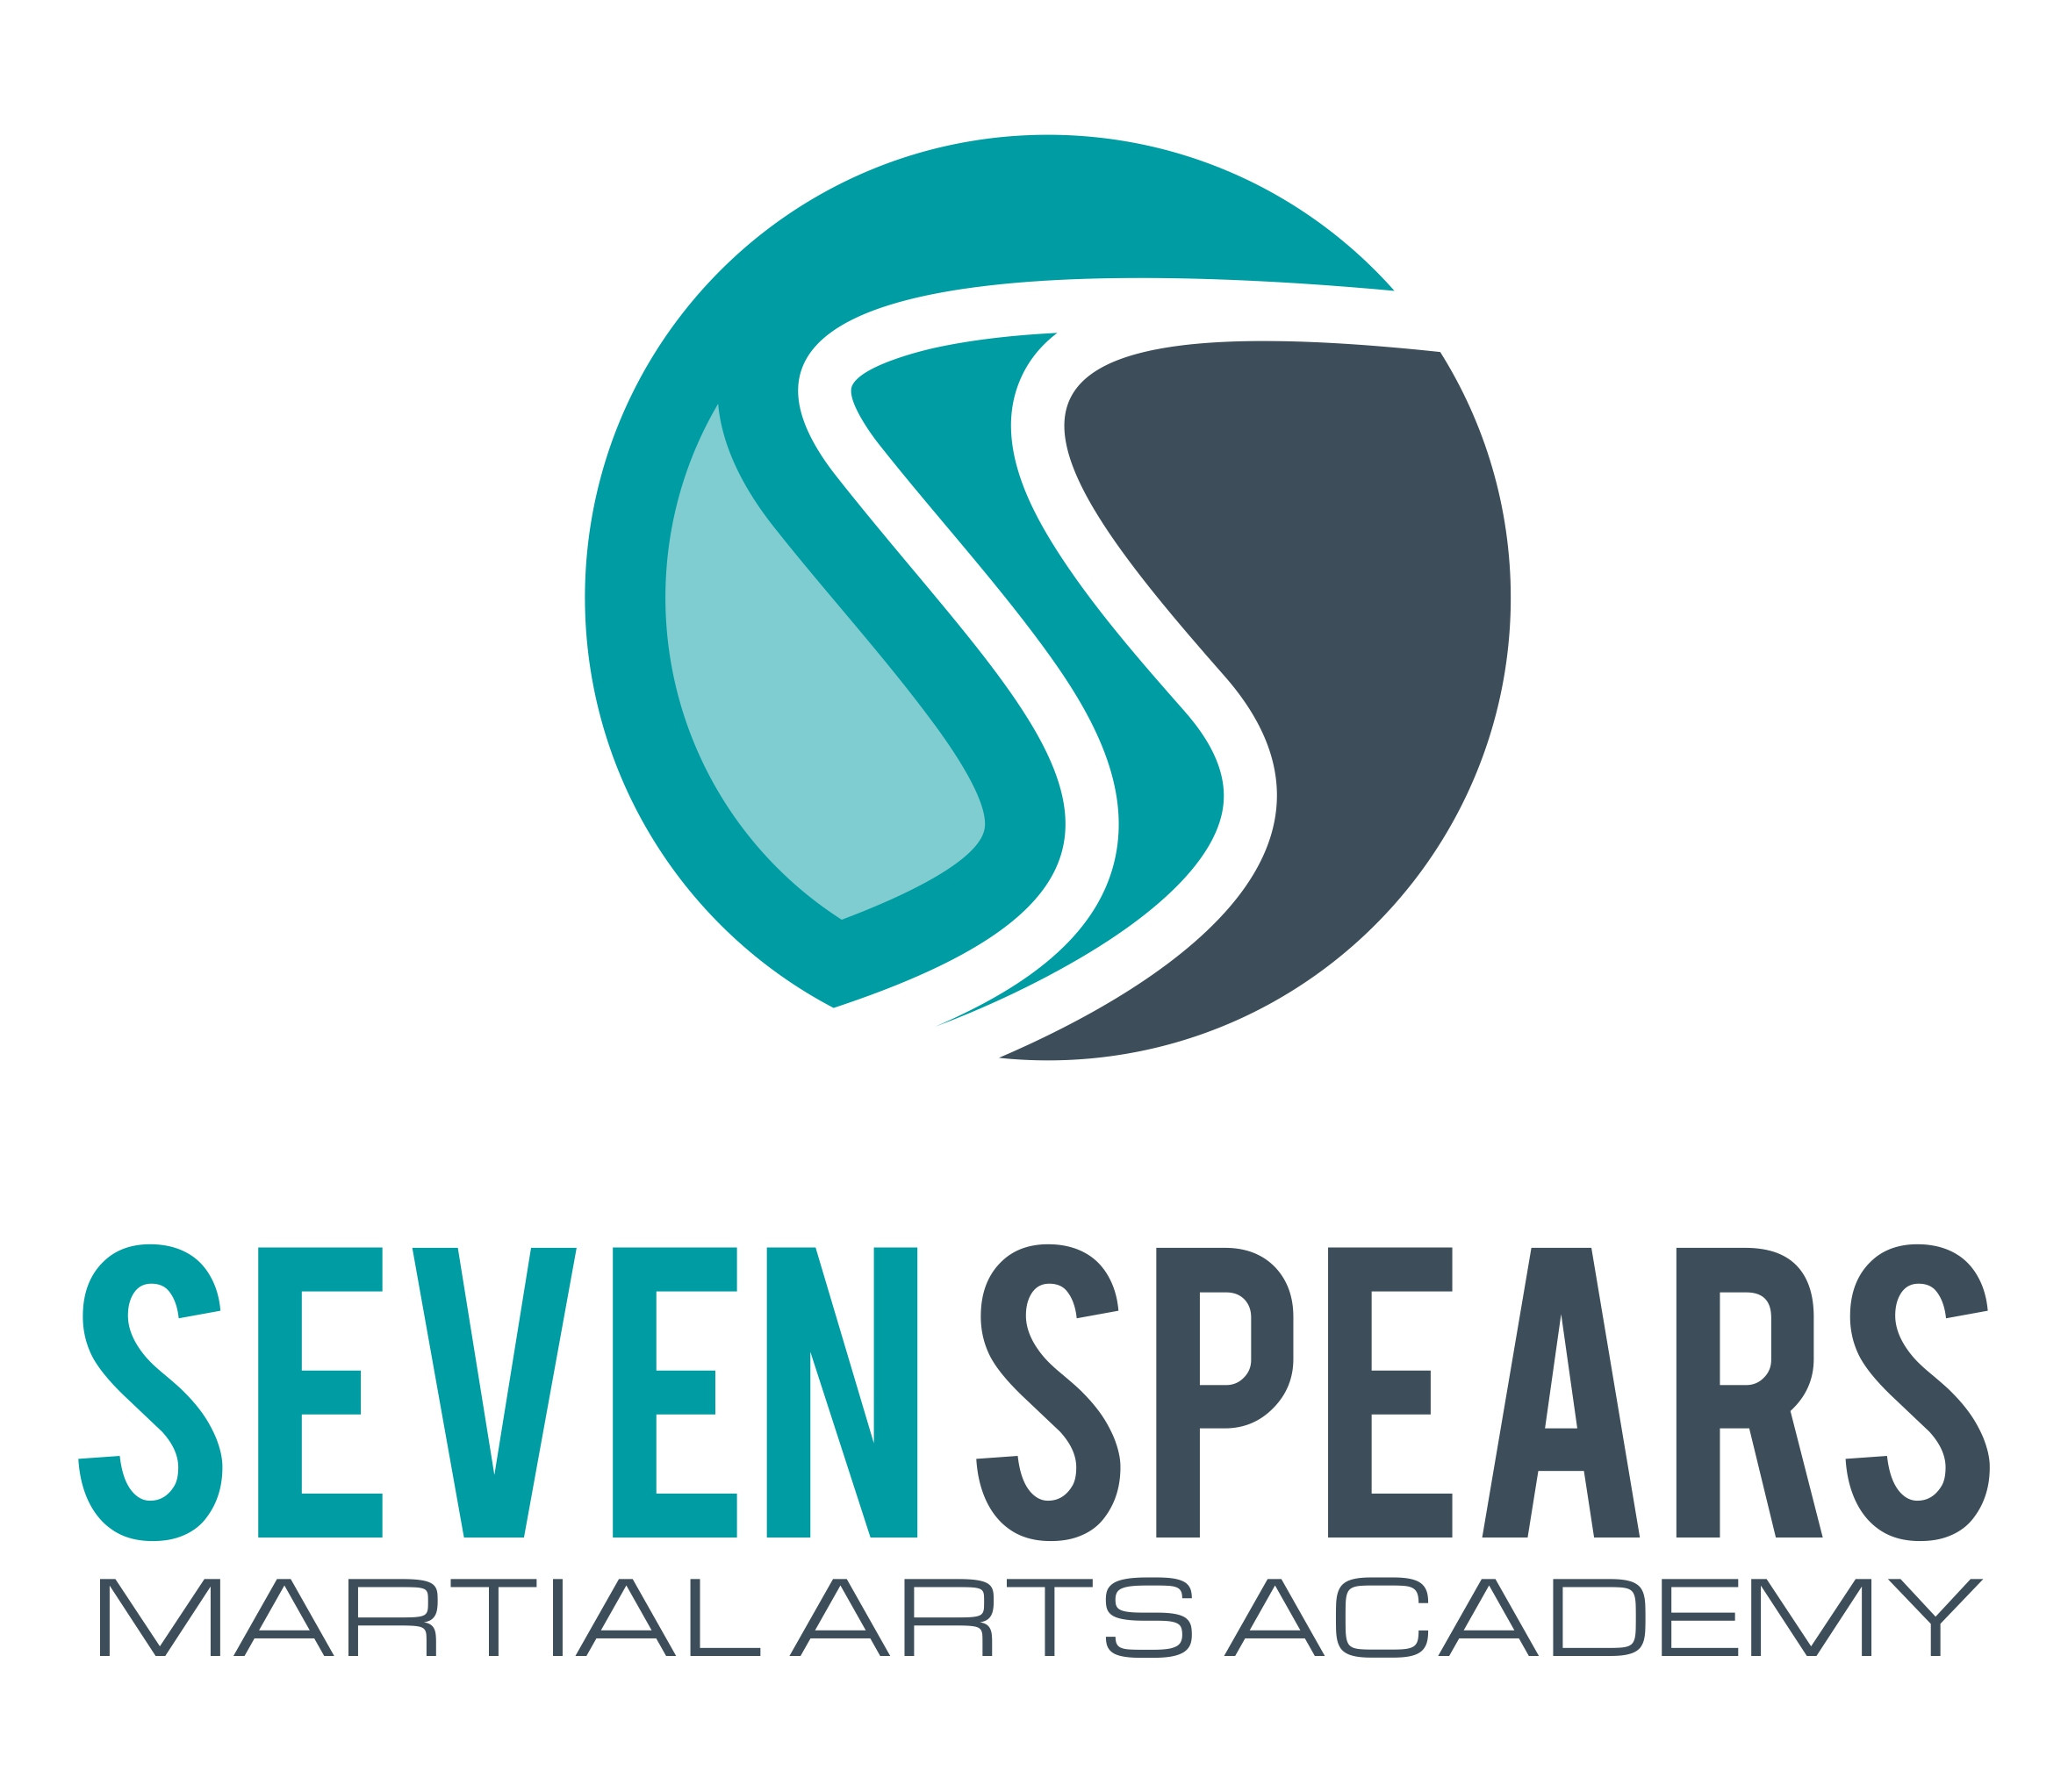 Seven Spears Martial Arts Academy logo